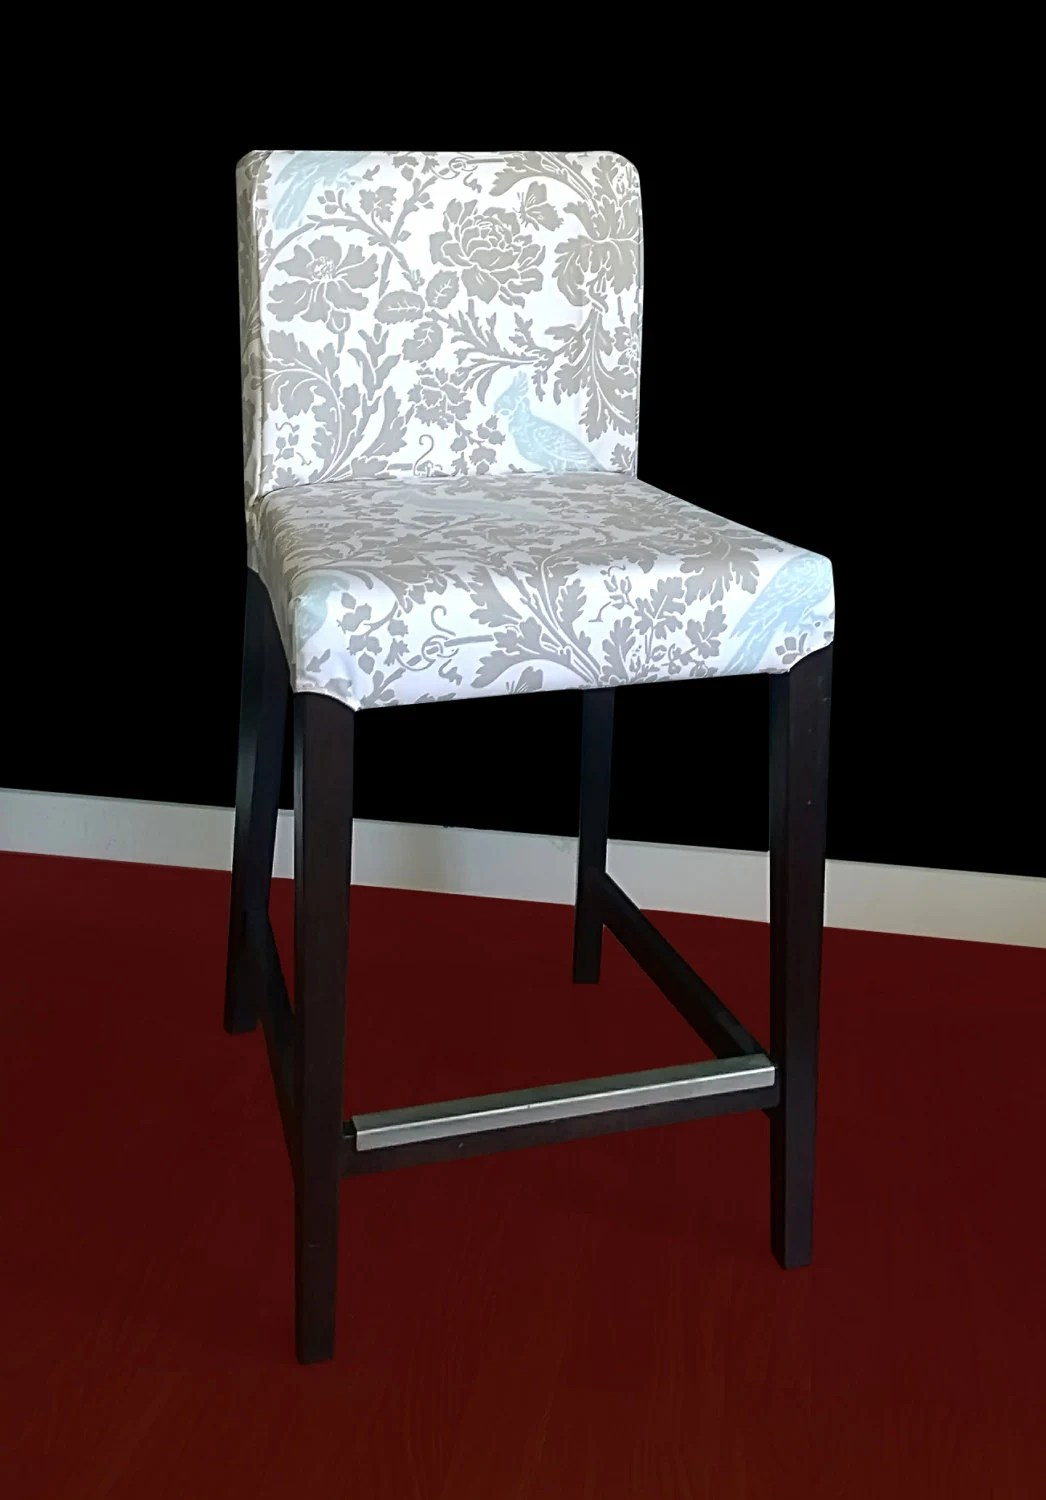 Henriksdal Chair Cover Ikea Henriksdal Bar Stool Chair Cover Barber By Rockincushions